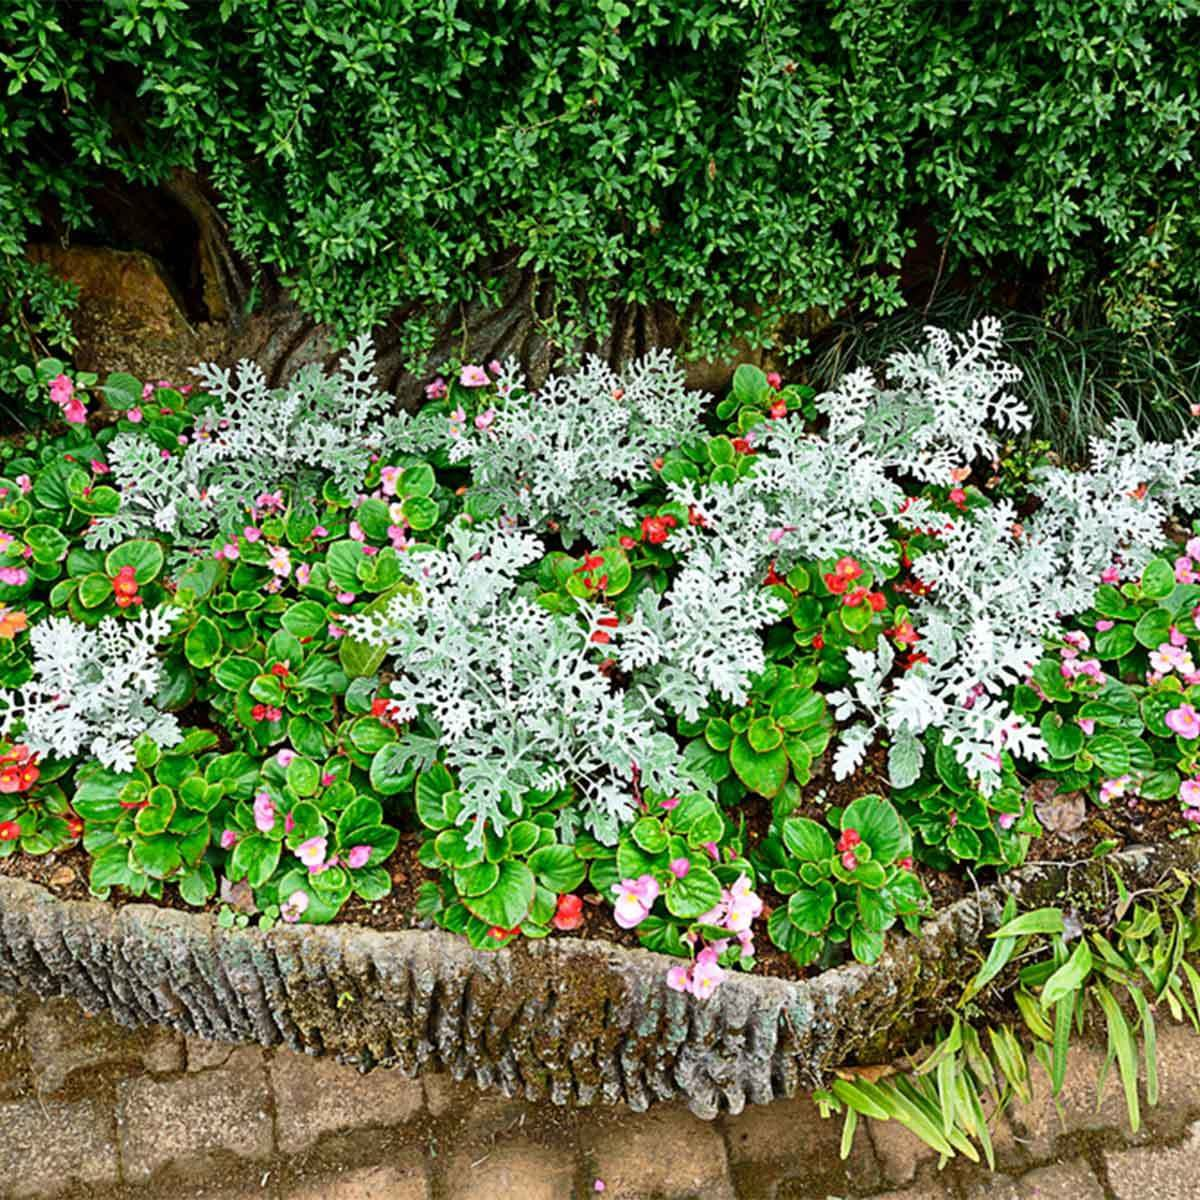 Begonias and Dusty Miller